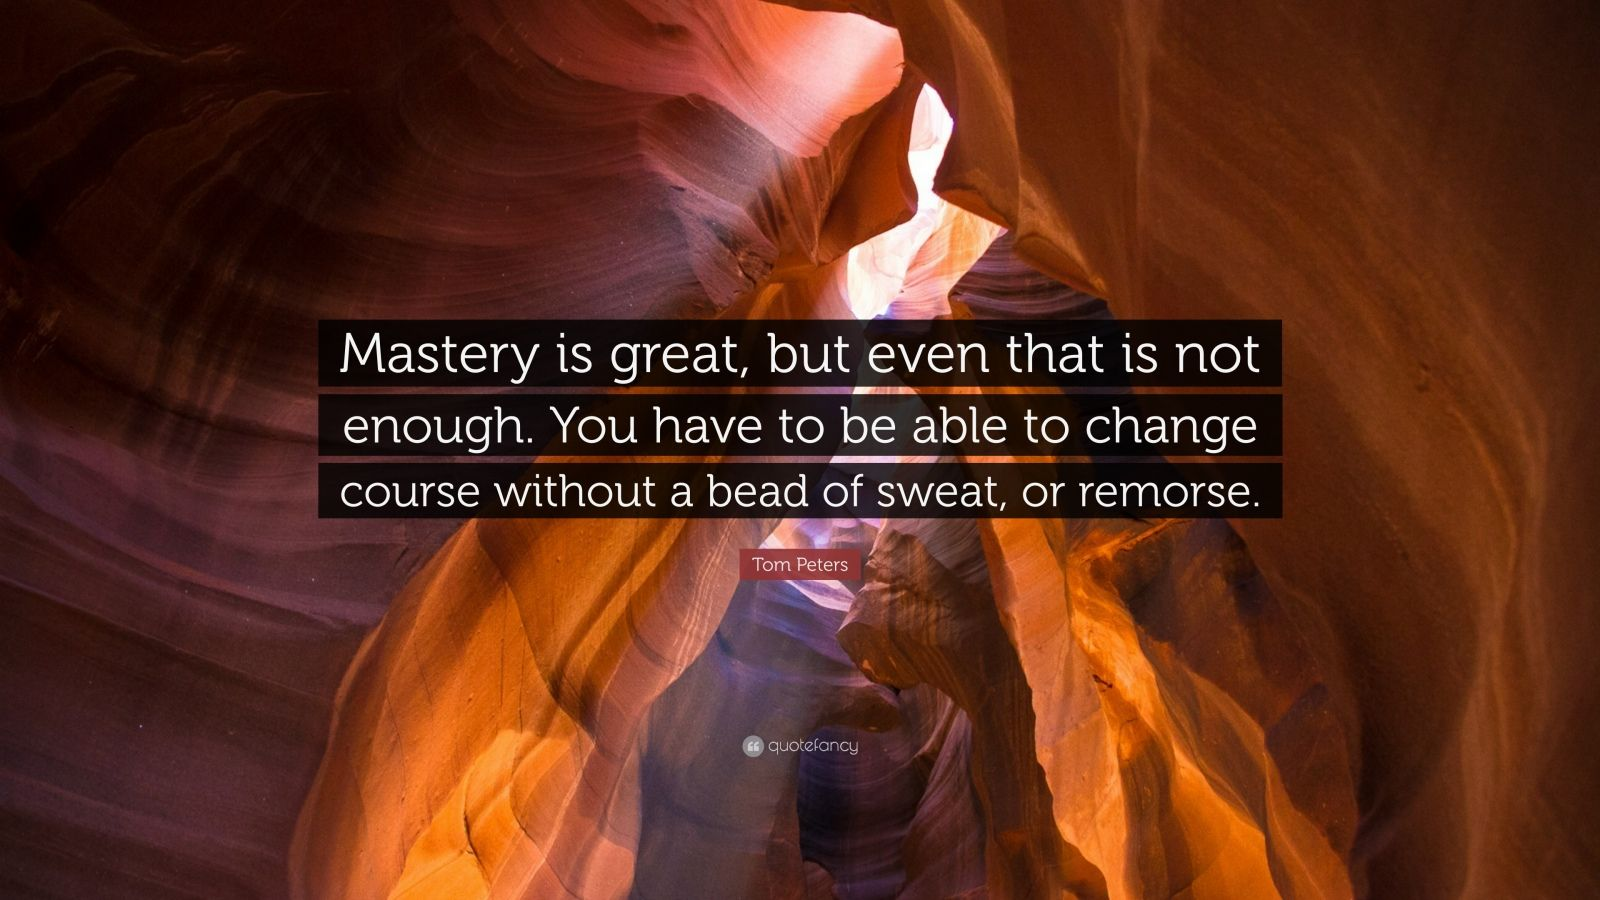 """Tom Peters Quote: """"Mastery is great, but even that is not enough. You have to be able to change course without a bead of sweat, or remorse."""""""